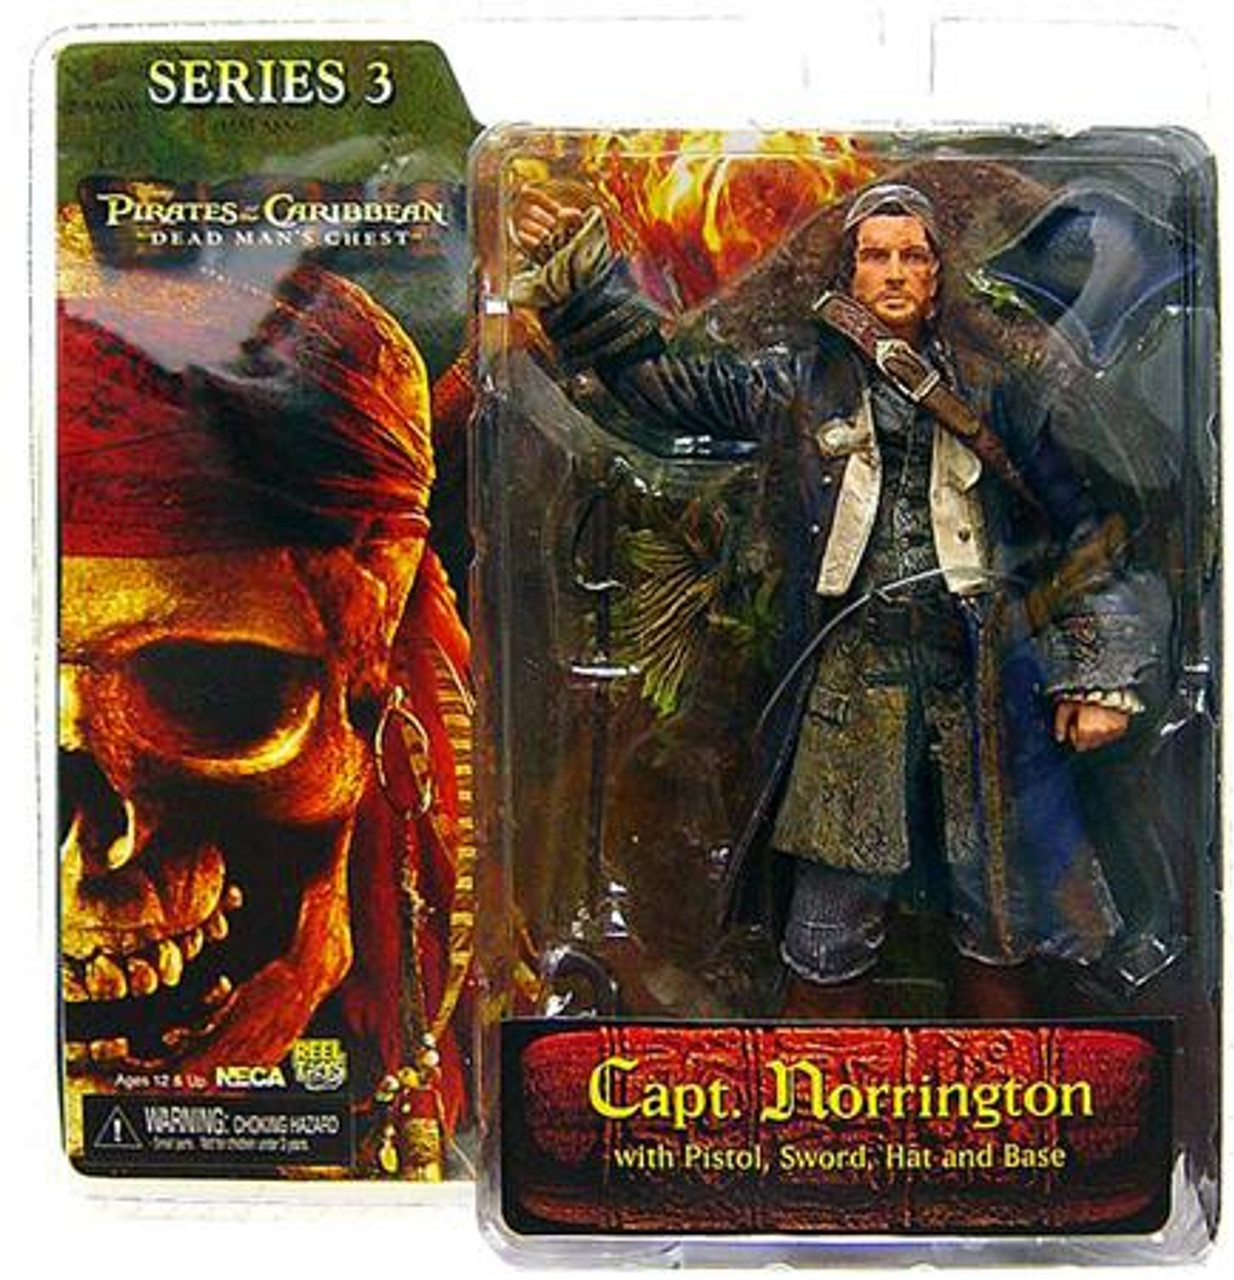 NECA Pirates of the Caribbean Dead Man's Chest Series 3 James Norrington Action Figure